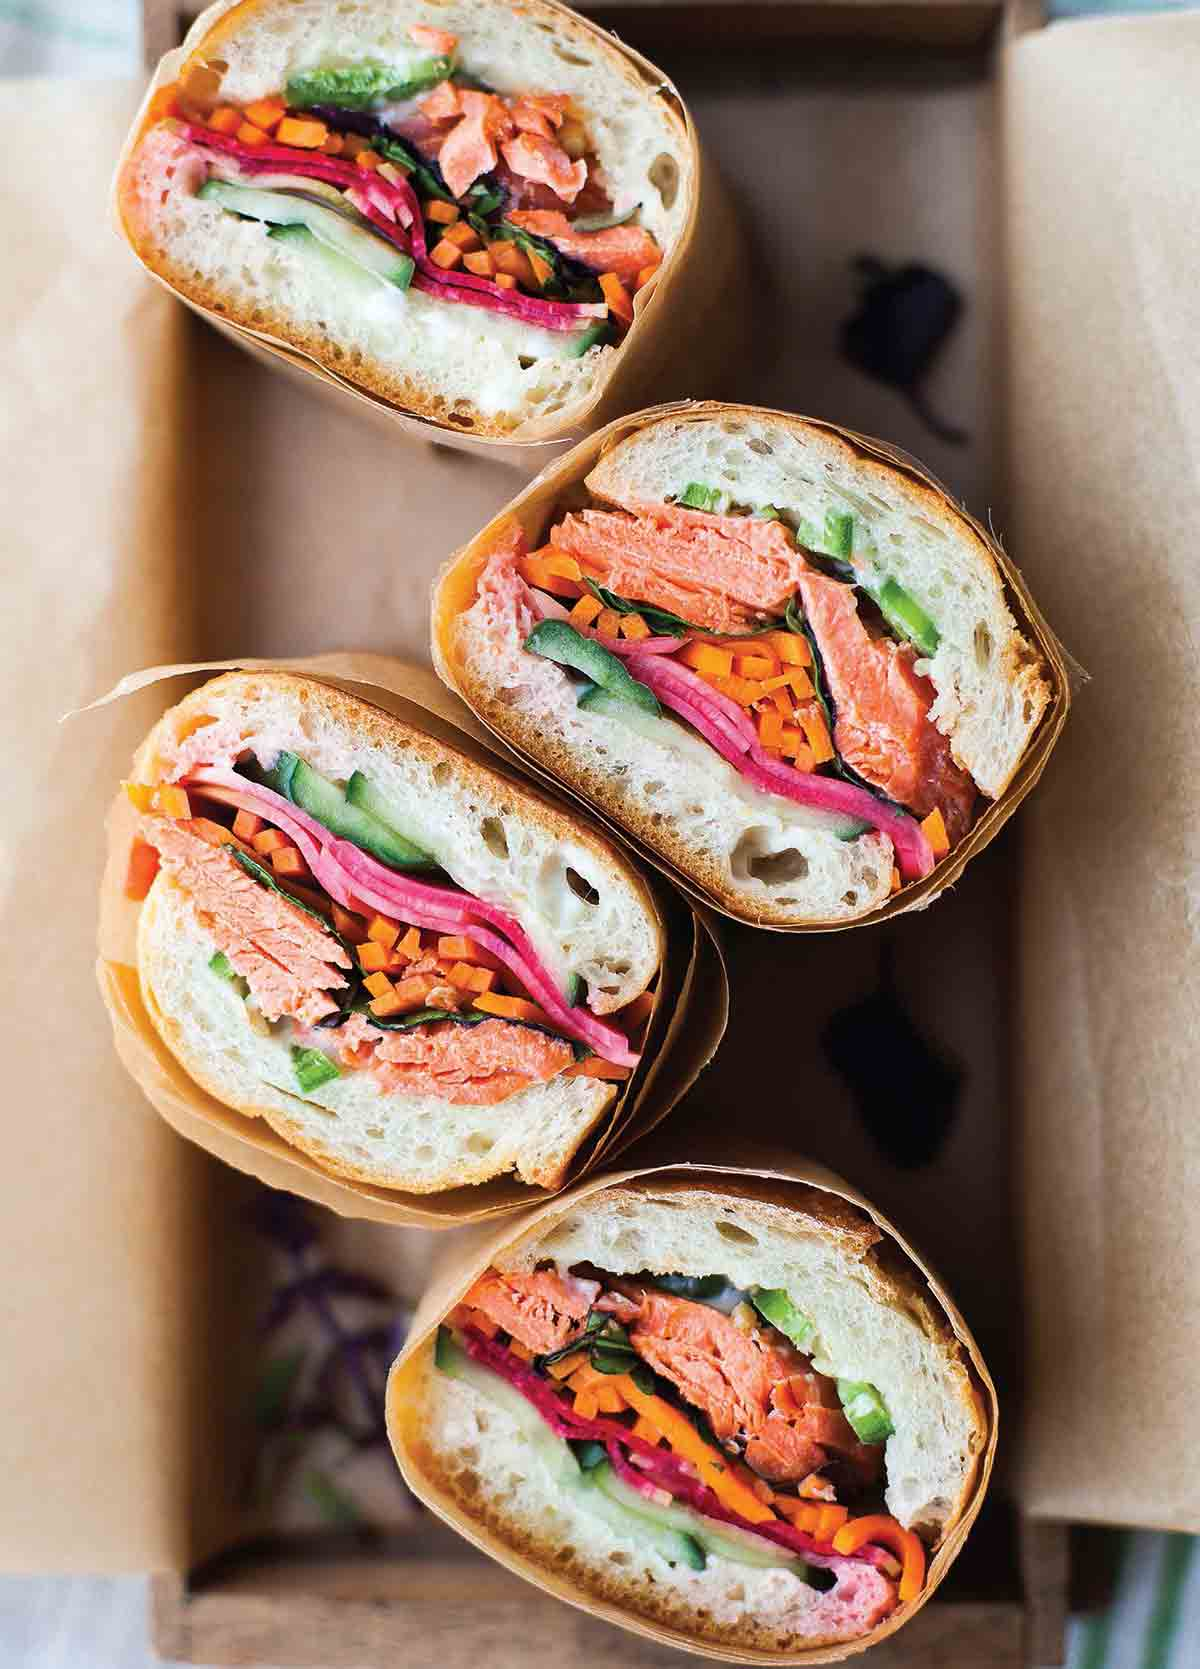 Four pieces of salmon banh mi wrapped in paper in a box.